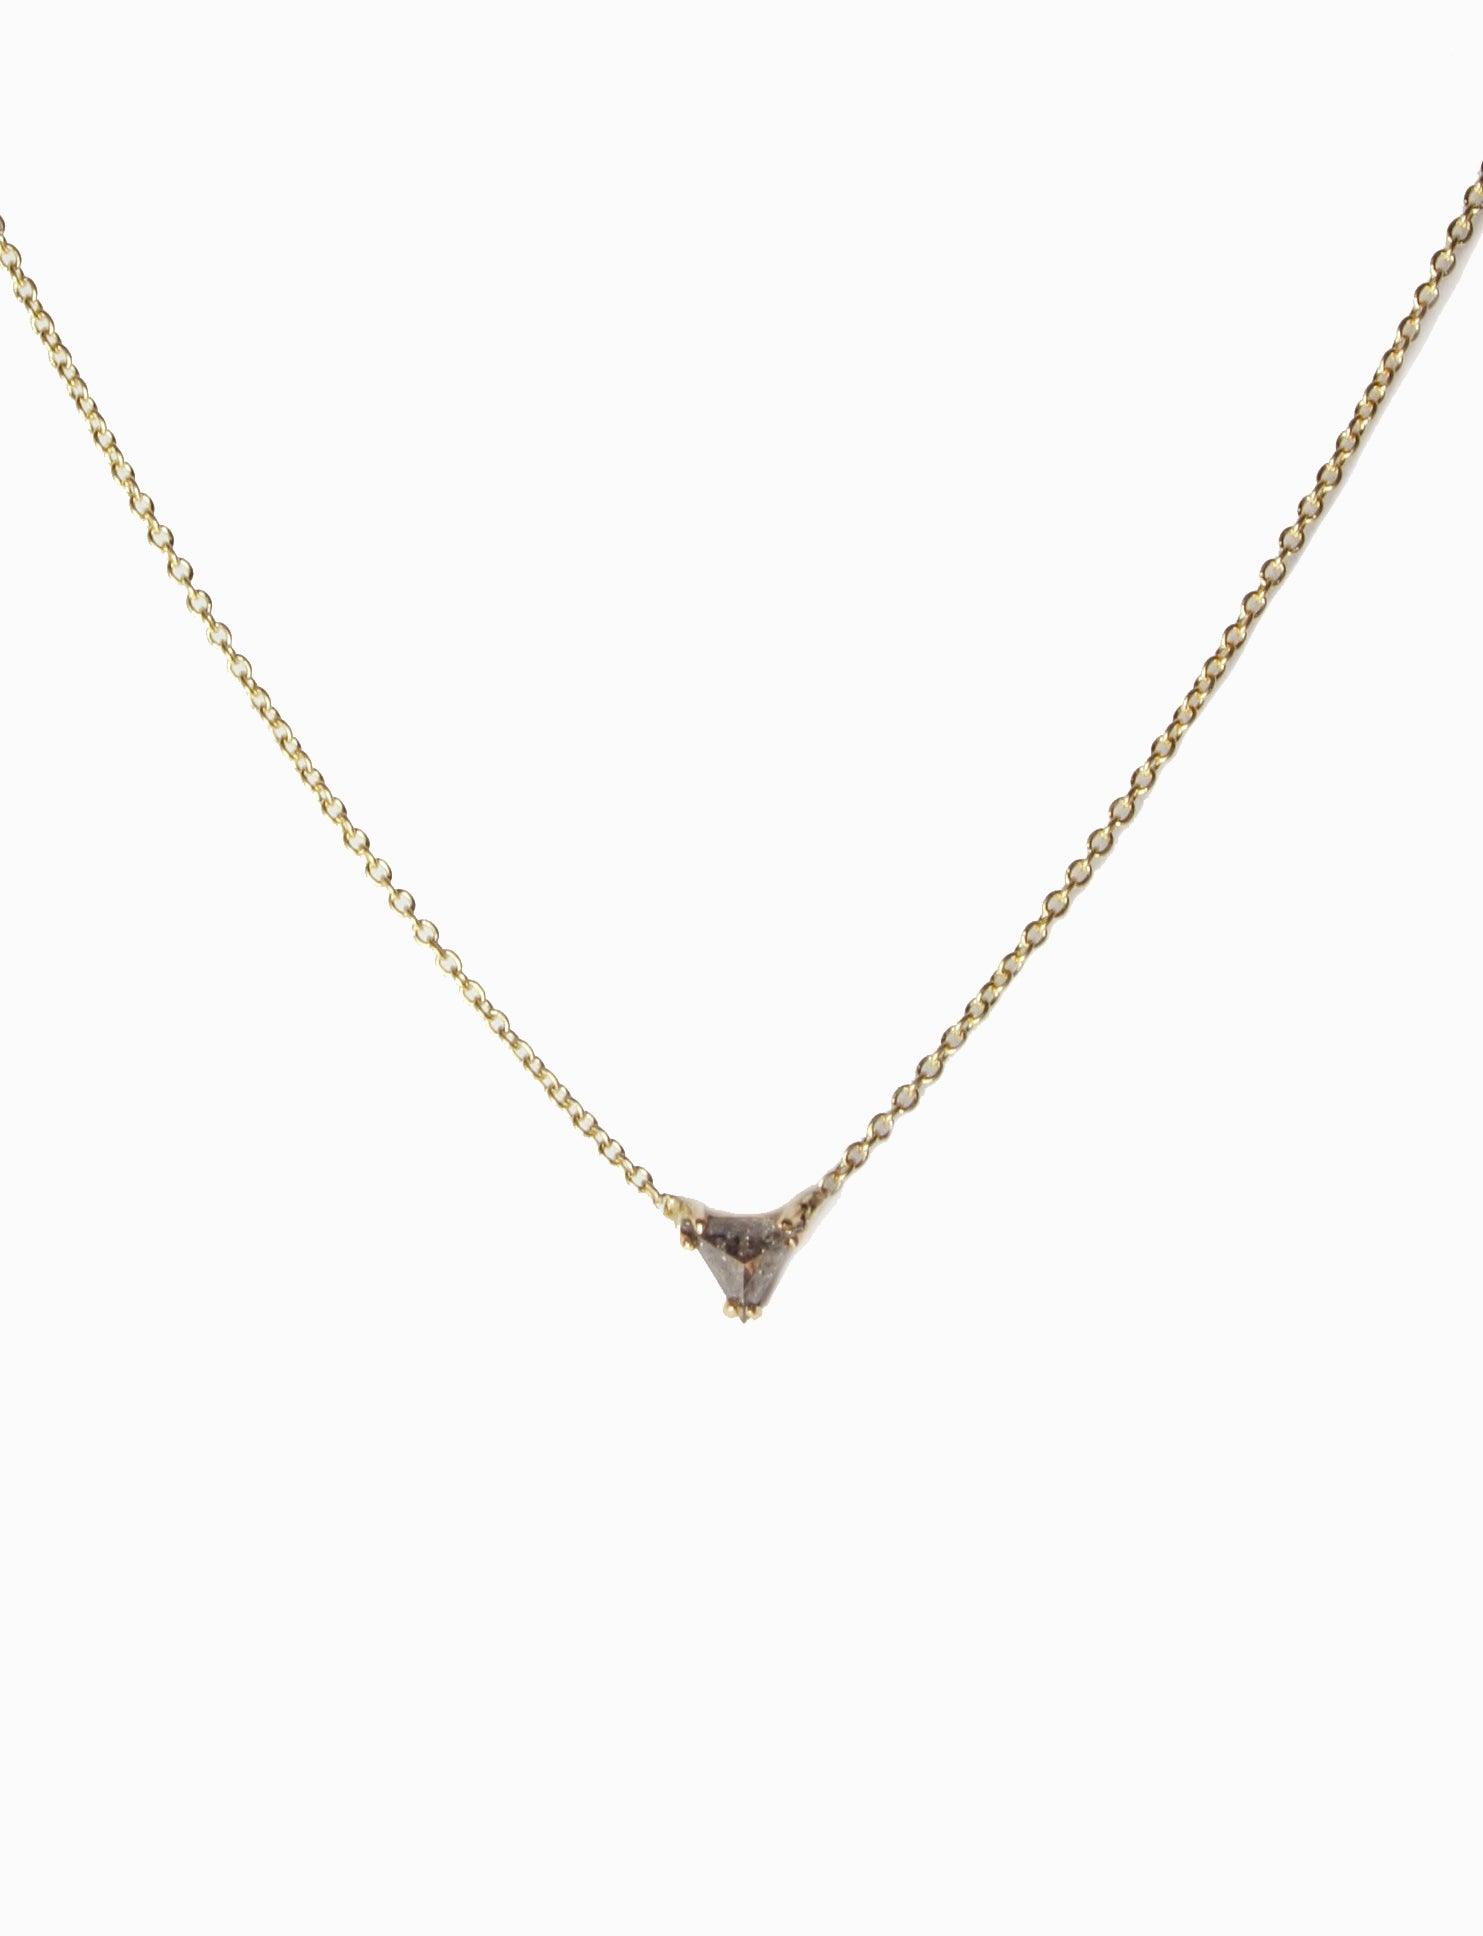 Diamond trillion necklace